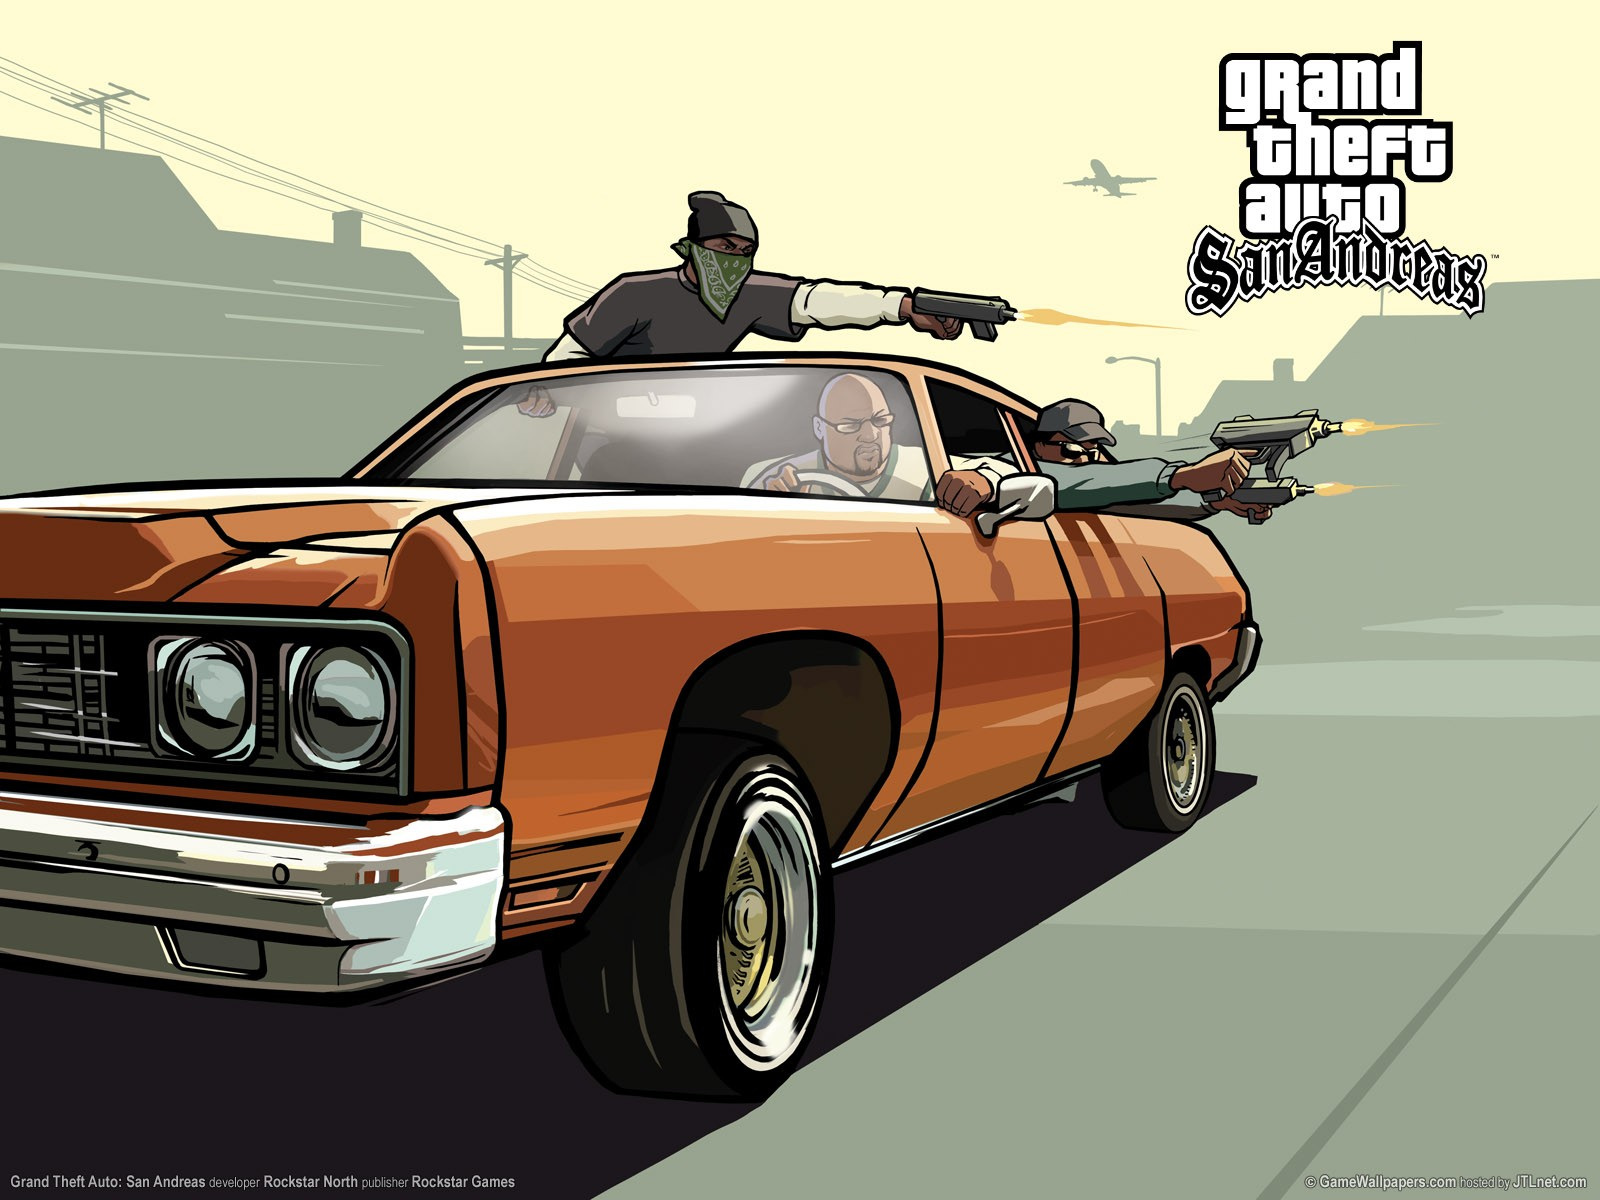 Grand Theft Auto: San Andreas Pics, Video Game Collection